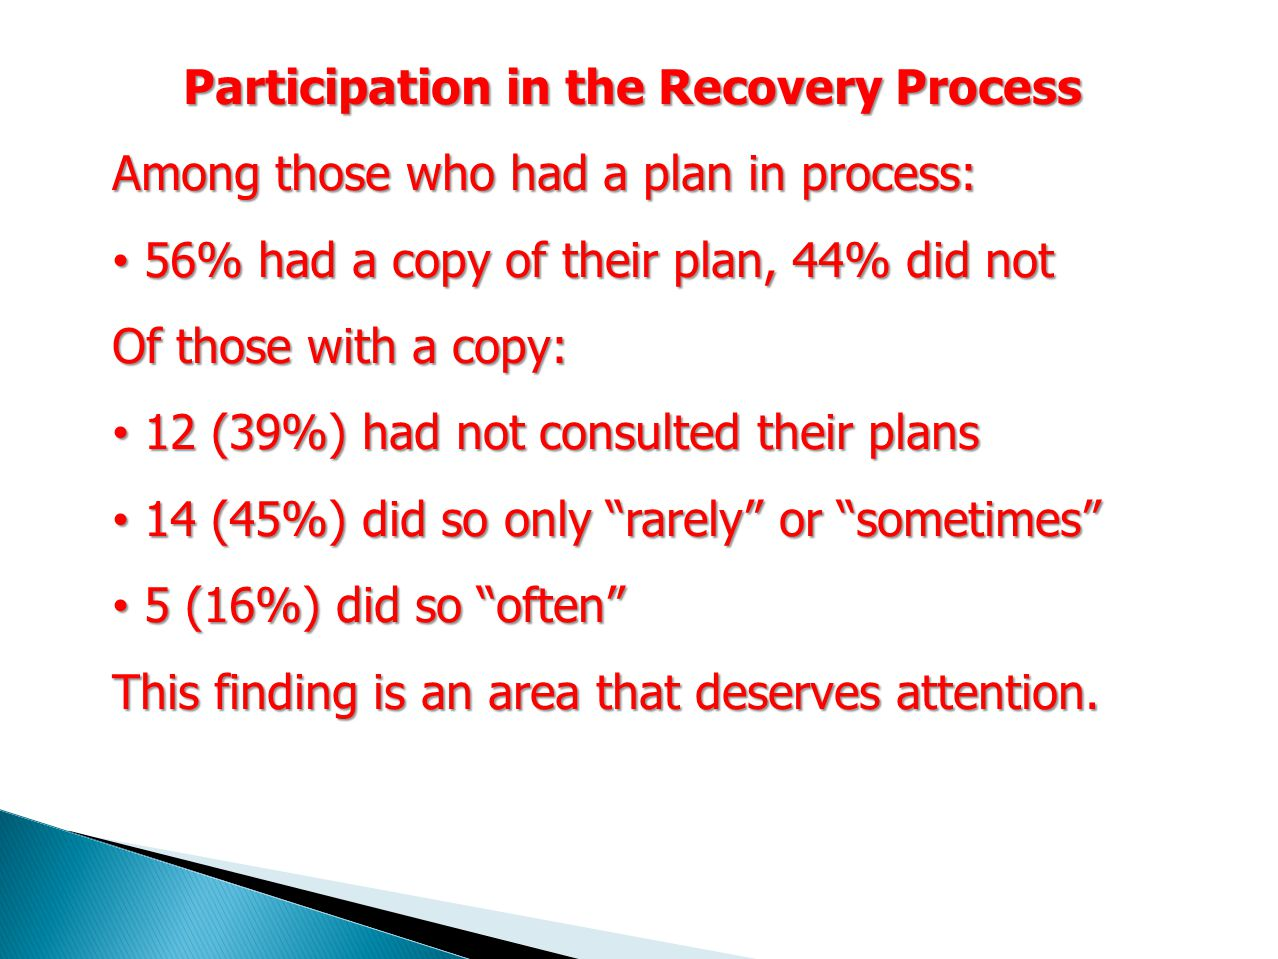 Participation in the Recovery Process Among those who had a plan in process: 56% had a copy of their plan, 44% did not 56% had a copy of their plan, 44% did not Of those with a copy: 12 (39%) had not consulted their plans 12 (39%) had not consulted their plans 14 (45%) did so only rarely or sometimes 14 (45%) did so only rarely or sometimes 5 (16%) did so often 5 (16%) did so often This finding is an area that deserves attention.